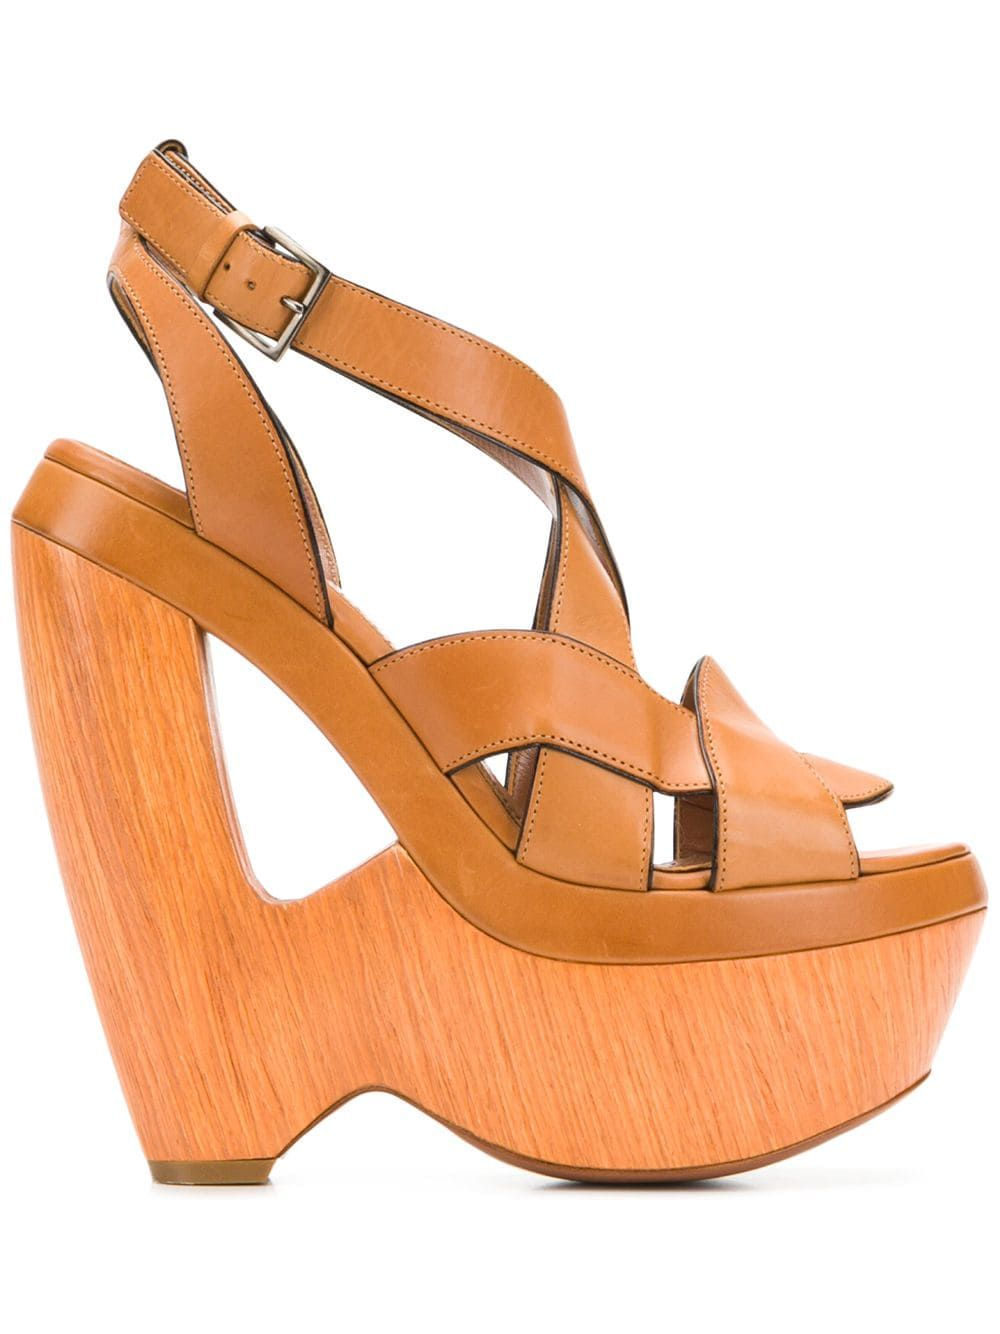 Alaia Pre Owned 2000 S Cutout Wedge Sandals Farfetch In 2020 Brown Wedge Sandals Wedge Sandals Wedges